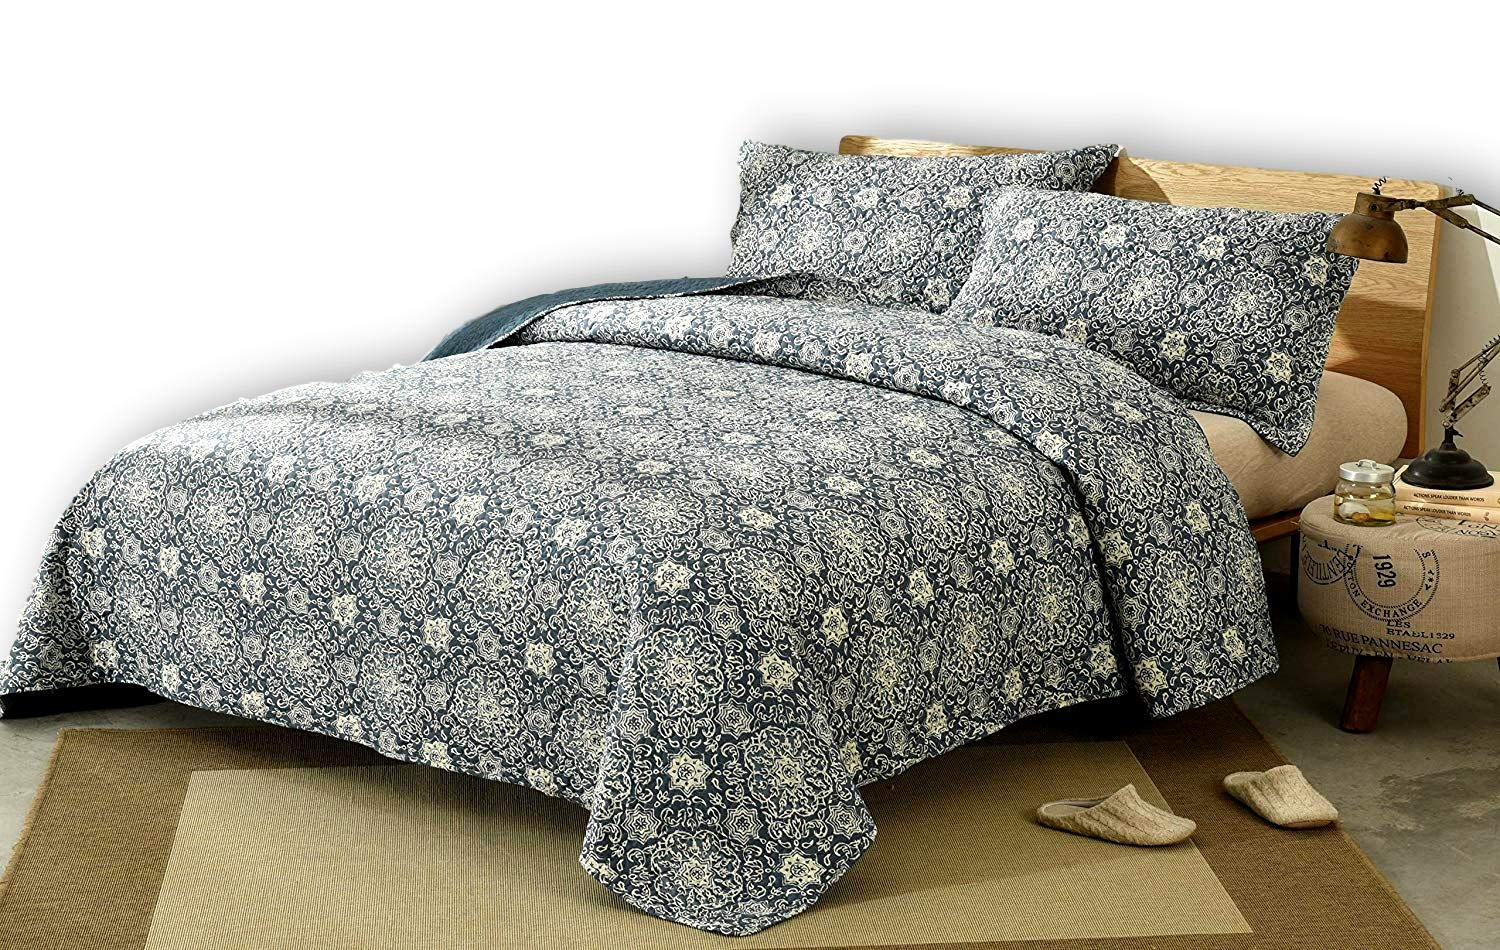 DaDa Bedding Bohemian Bedspread Set - Suzani Medallion Off White Ash Grey Navy Blue Lapis - Floral Star Quilted Coverlet - King - 3-Pieces